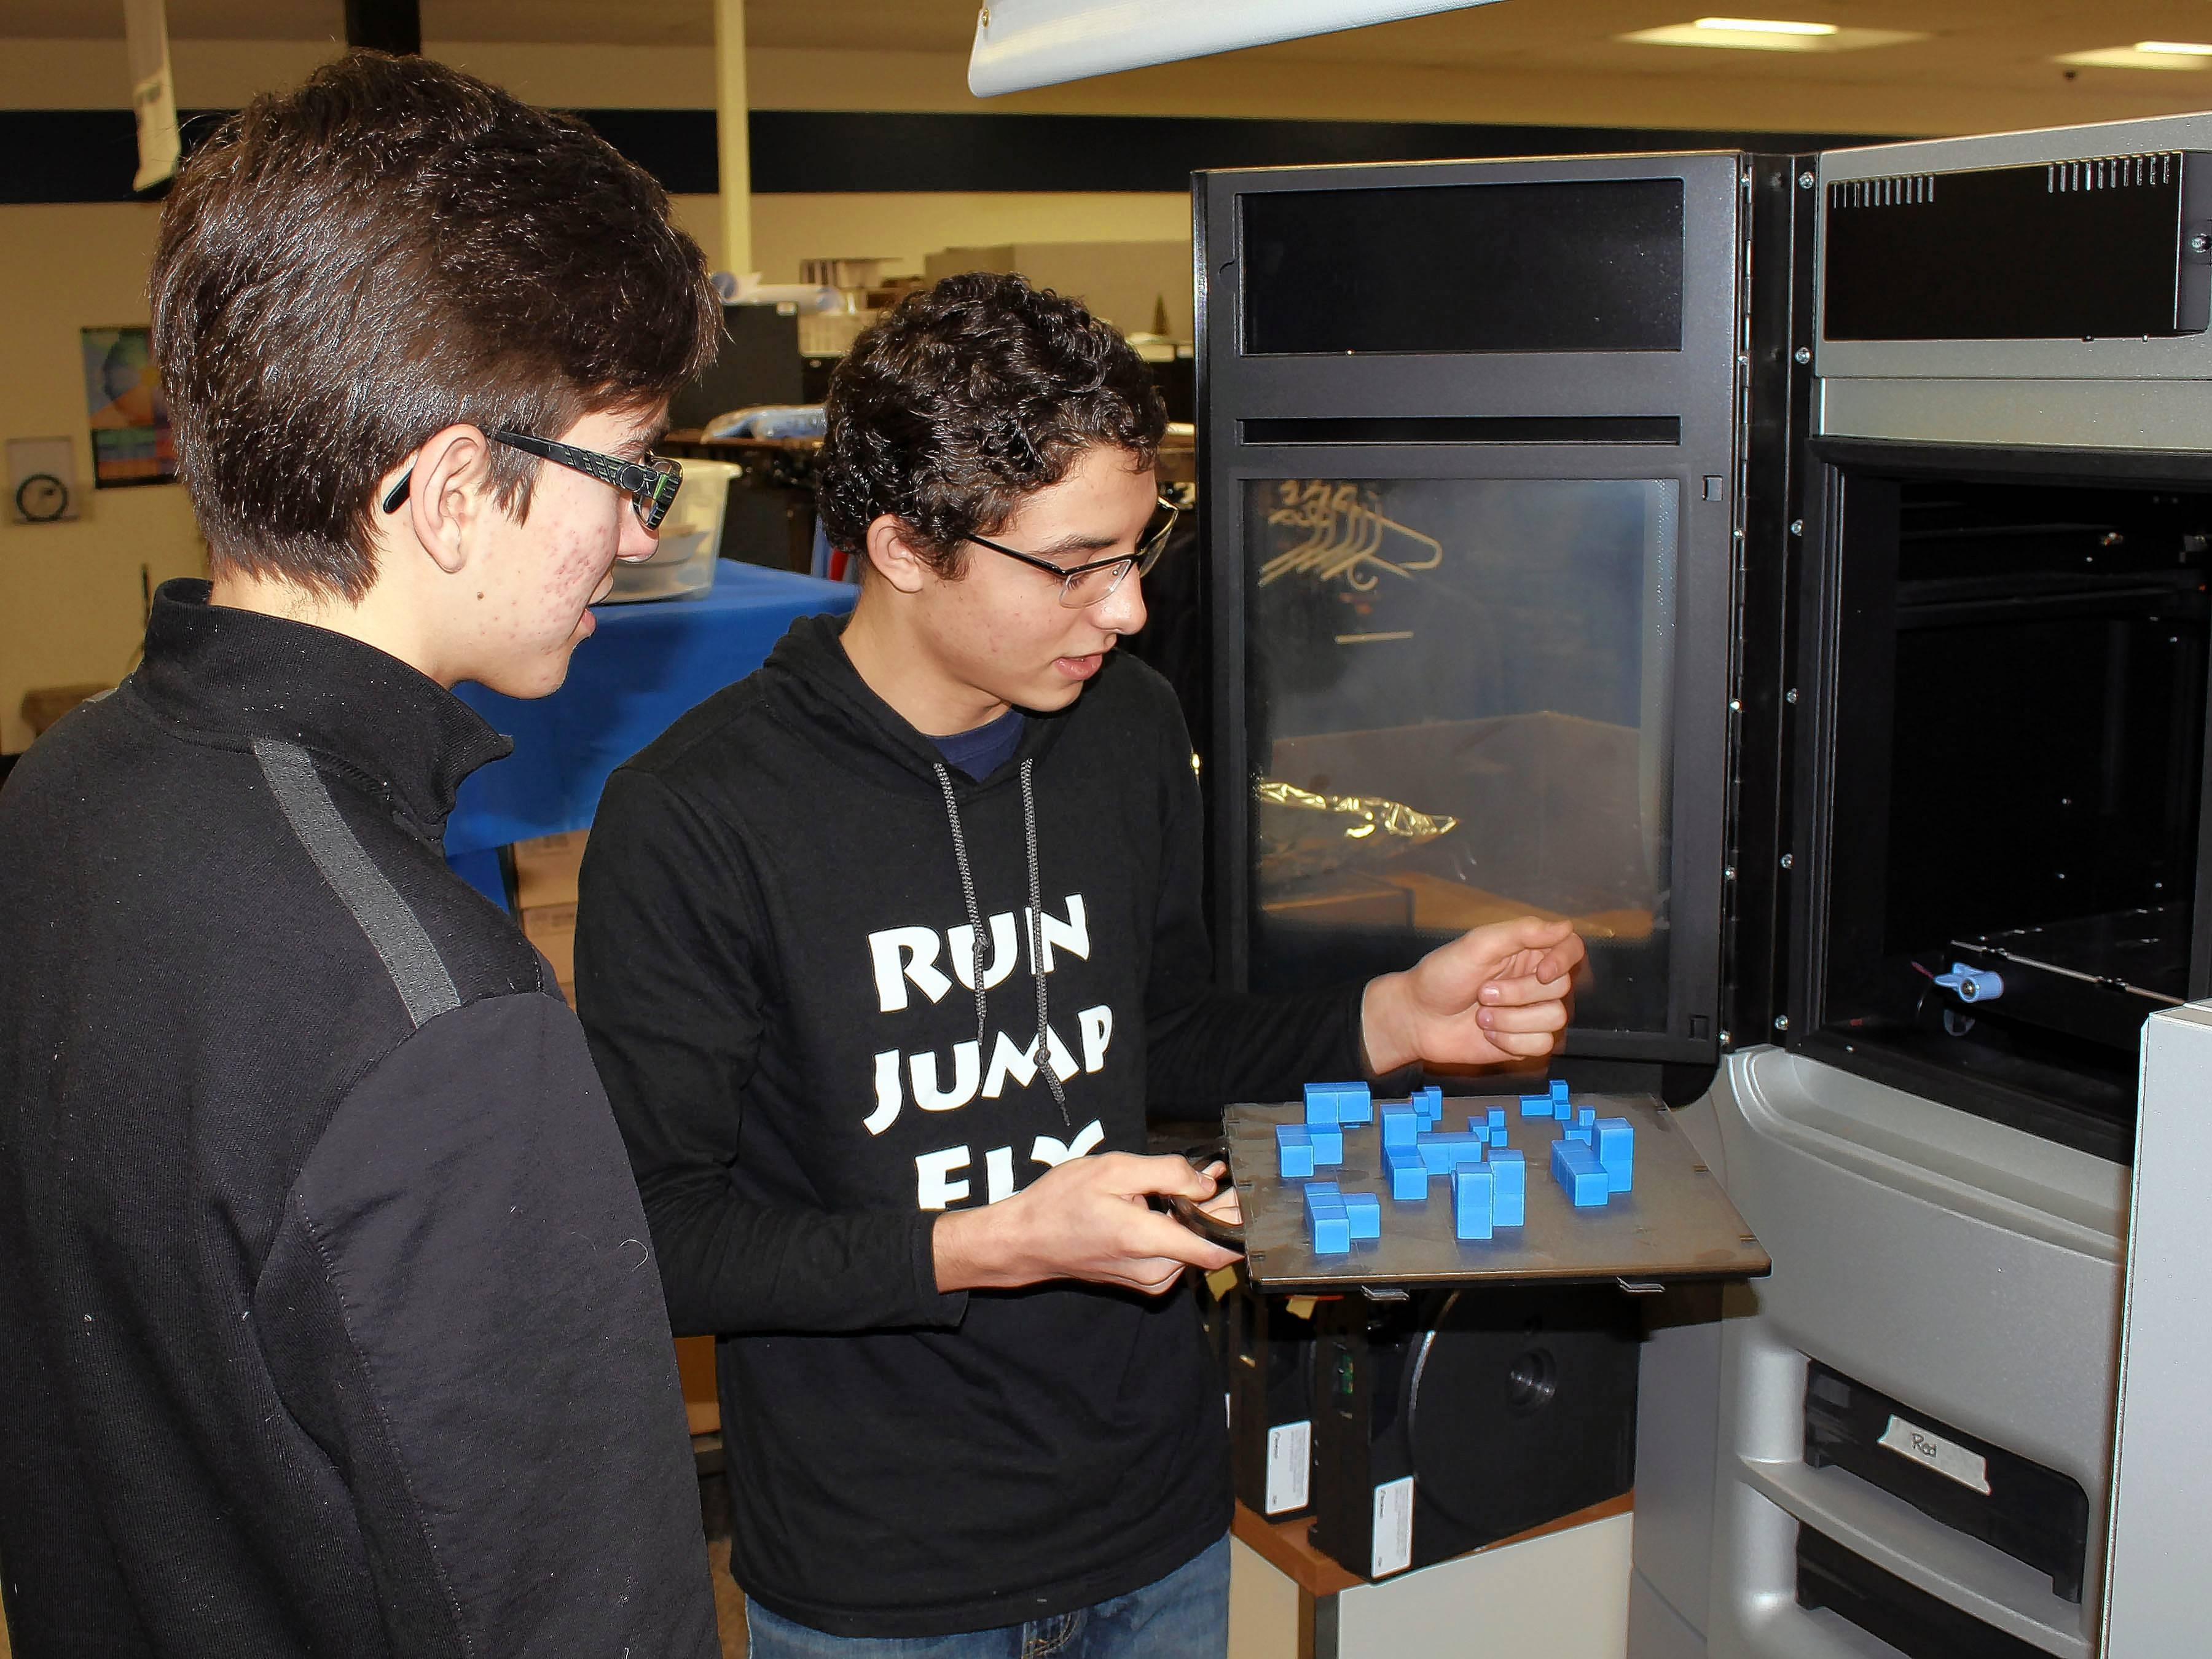 Ben Cavanaugh of Wheaton Warrenville South, from left, and Usama Humecki of Wheaton North used Technology Center of DuPage's 3-D printer to form the final pieces of a puzzle cube design. The printer is used in class to produce prototypes of student designs.